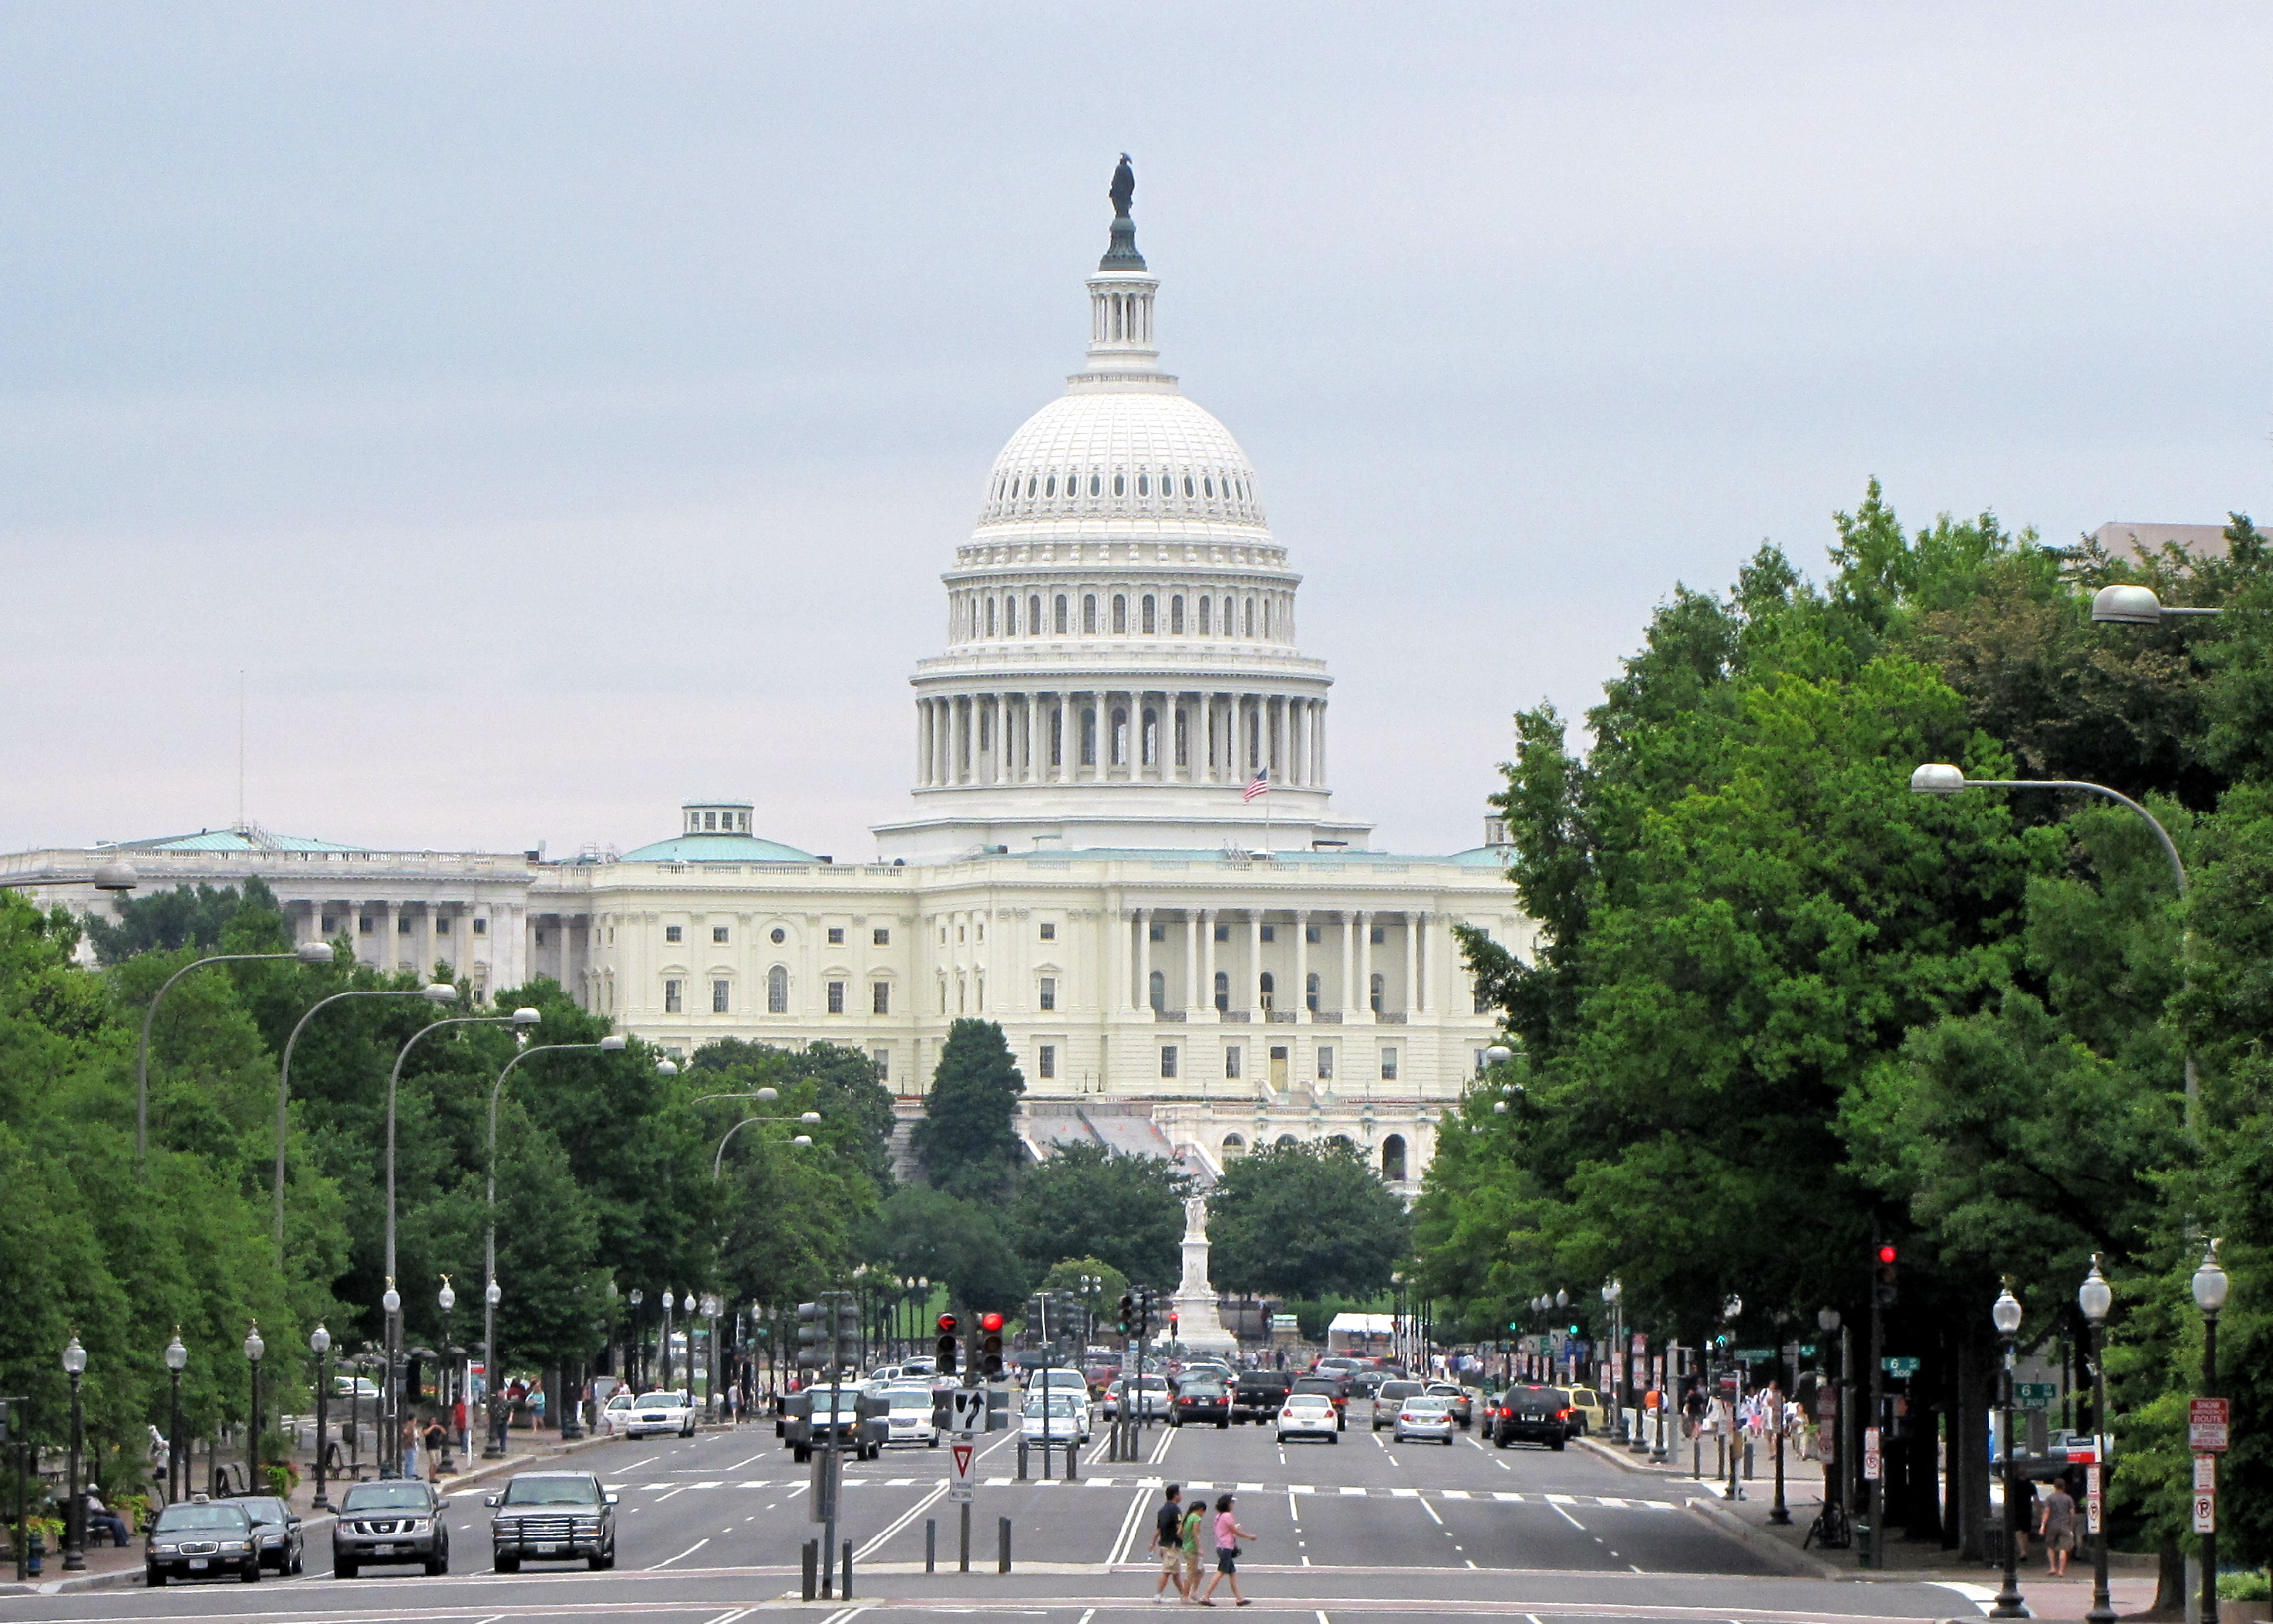 Capitol Building Street View